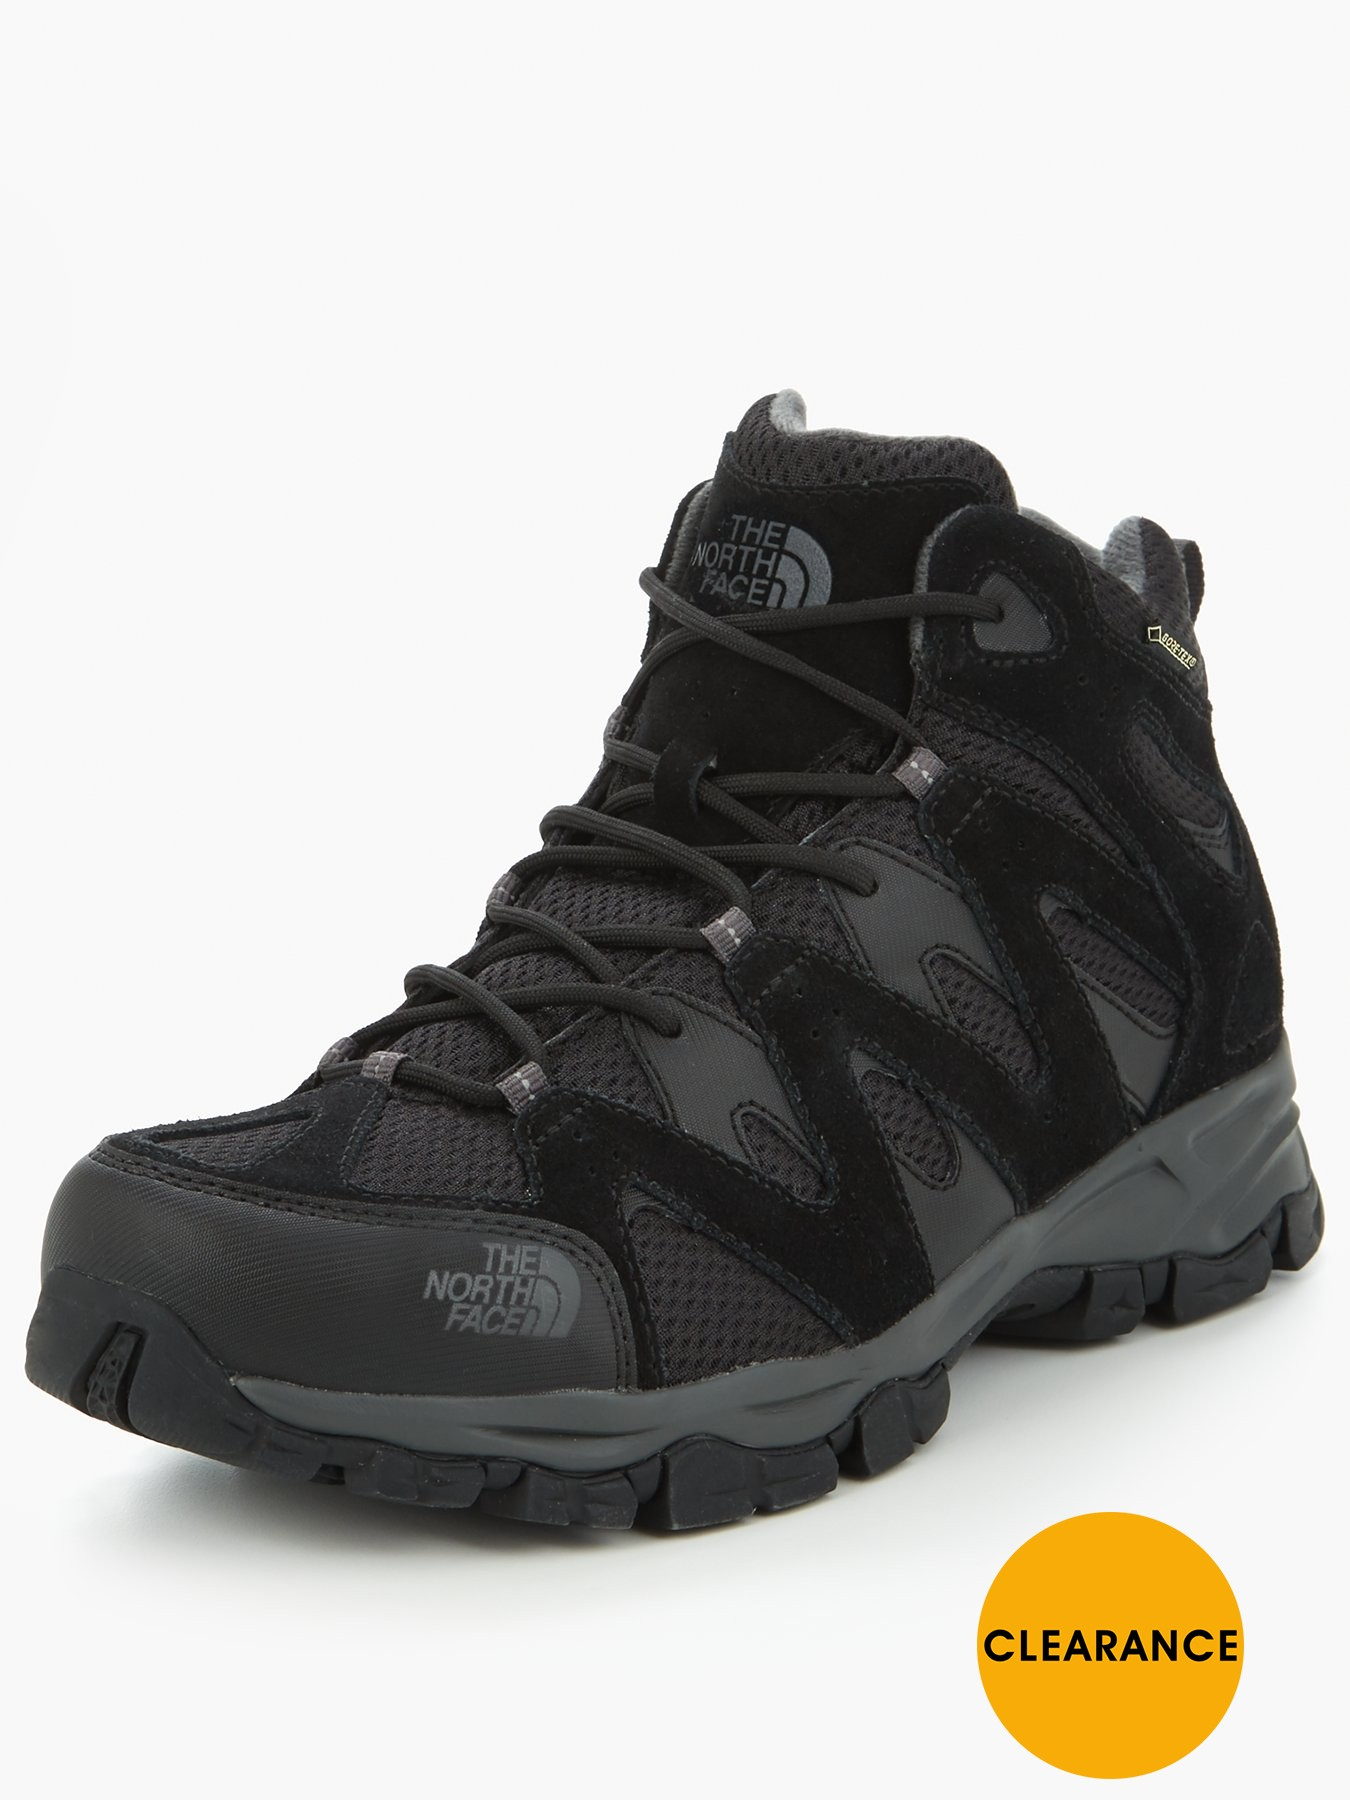 THE NORTH FACE Storm Hike Mid GTX 1600176142 Men's Shoes THE NORTH FACE Walking Boots